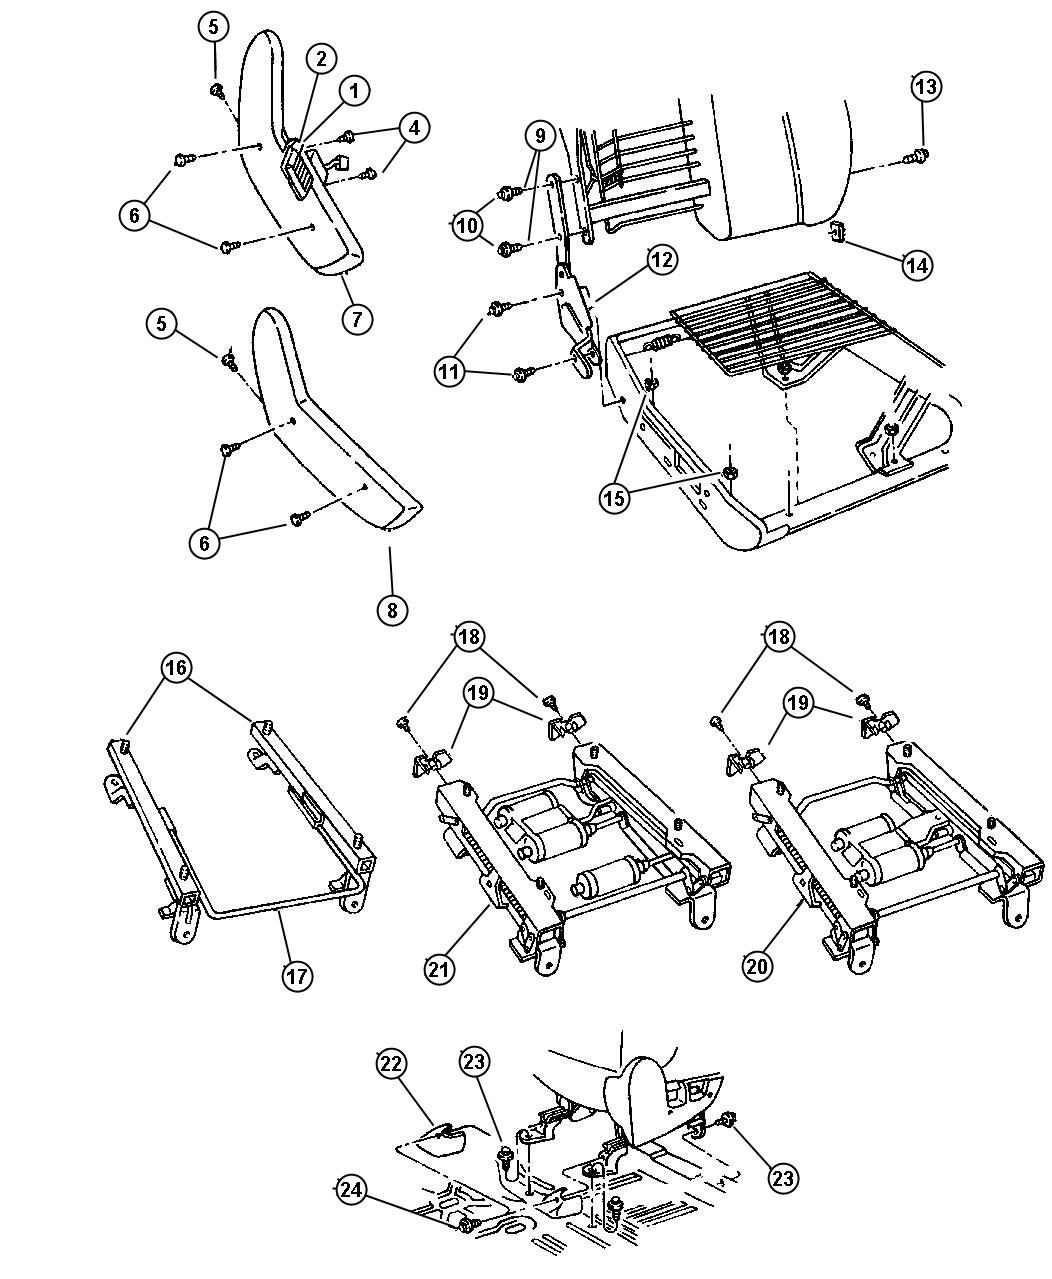 Wiring Diagrams For 89 Ford Efi, Wiring, Get Free Image